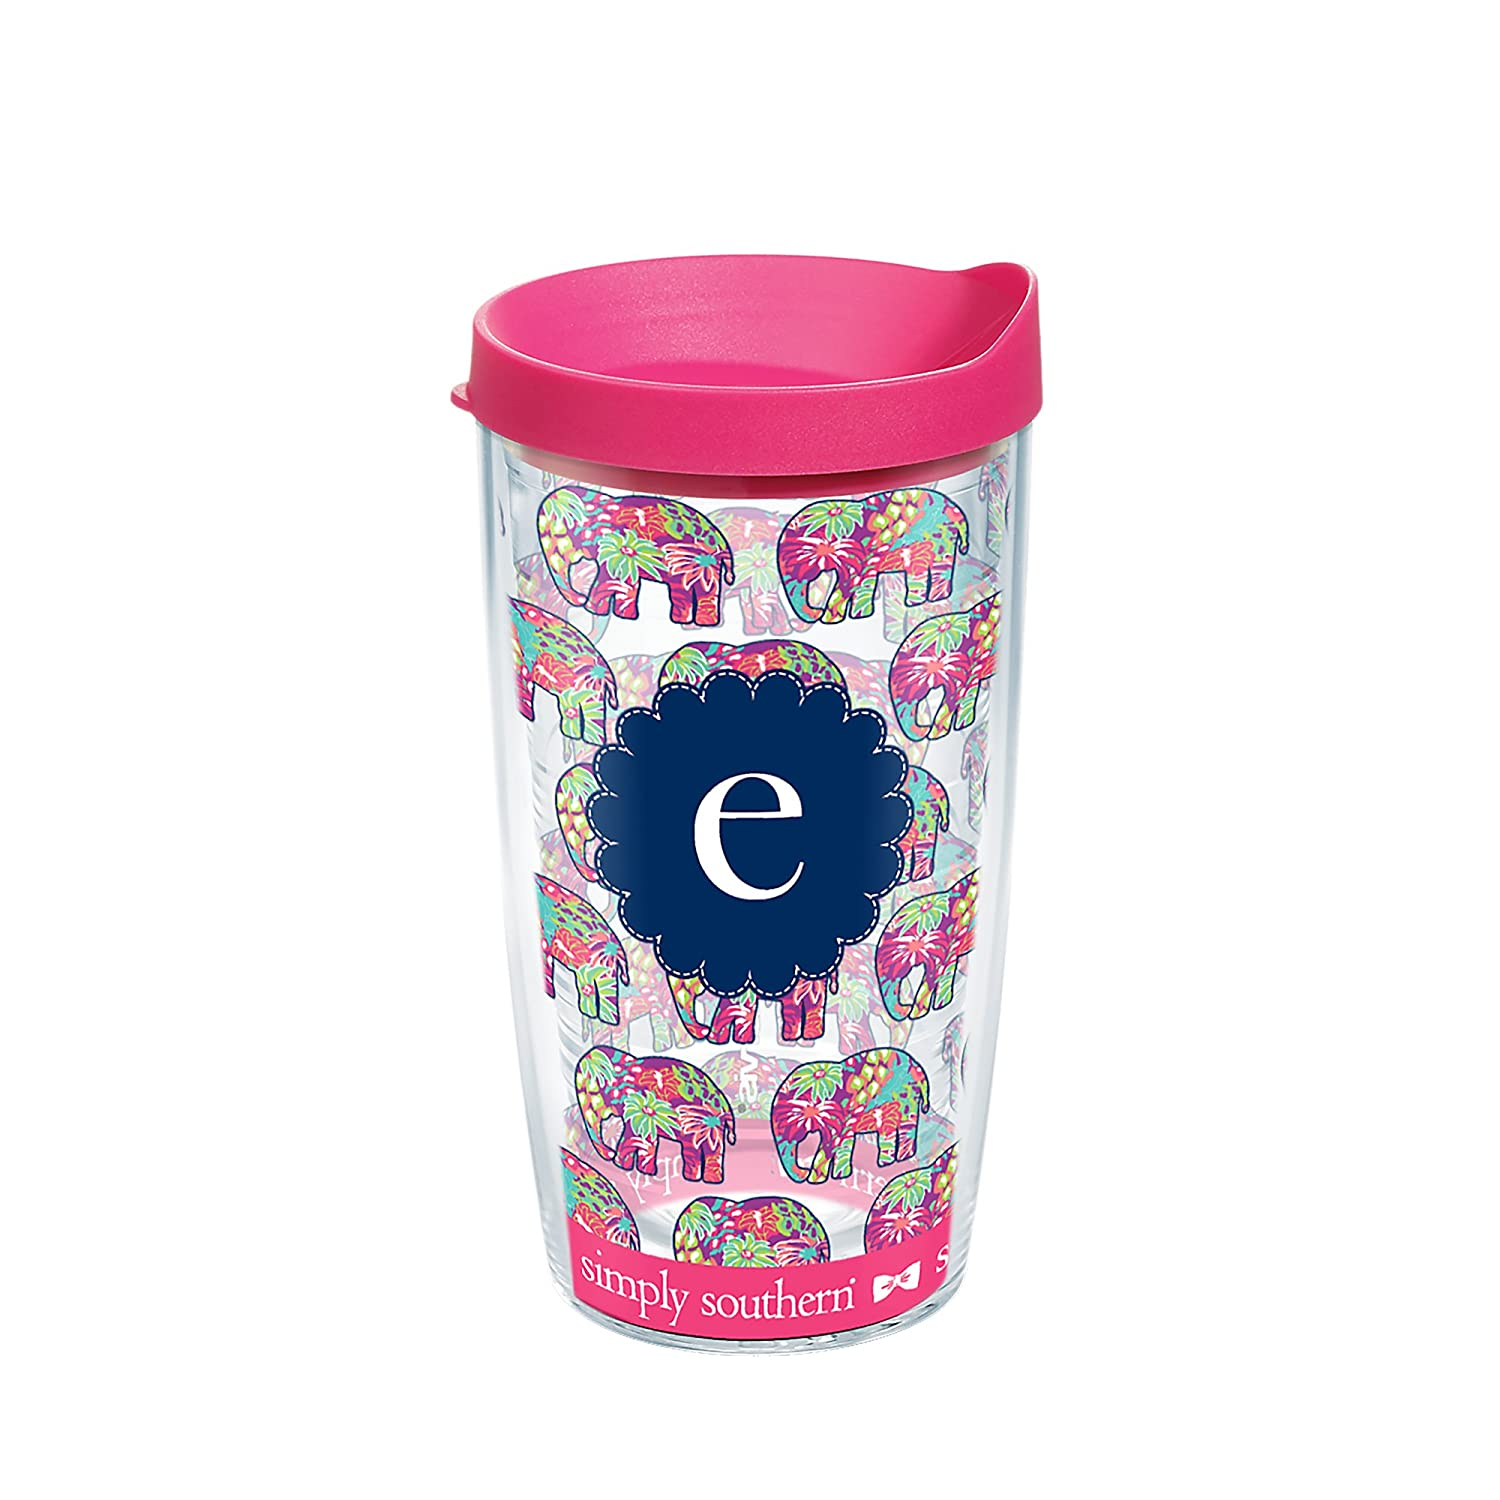 7aa916de376 Tervis 1241324 SIMPLY SOUTHERN Tumbler with wrap 16oz Clear